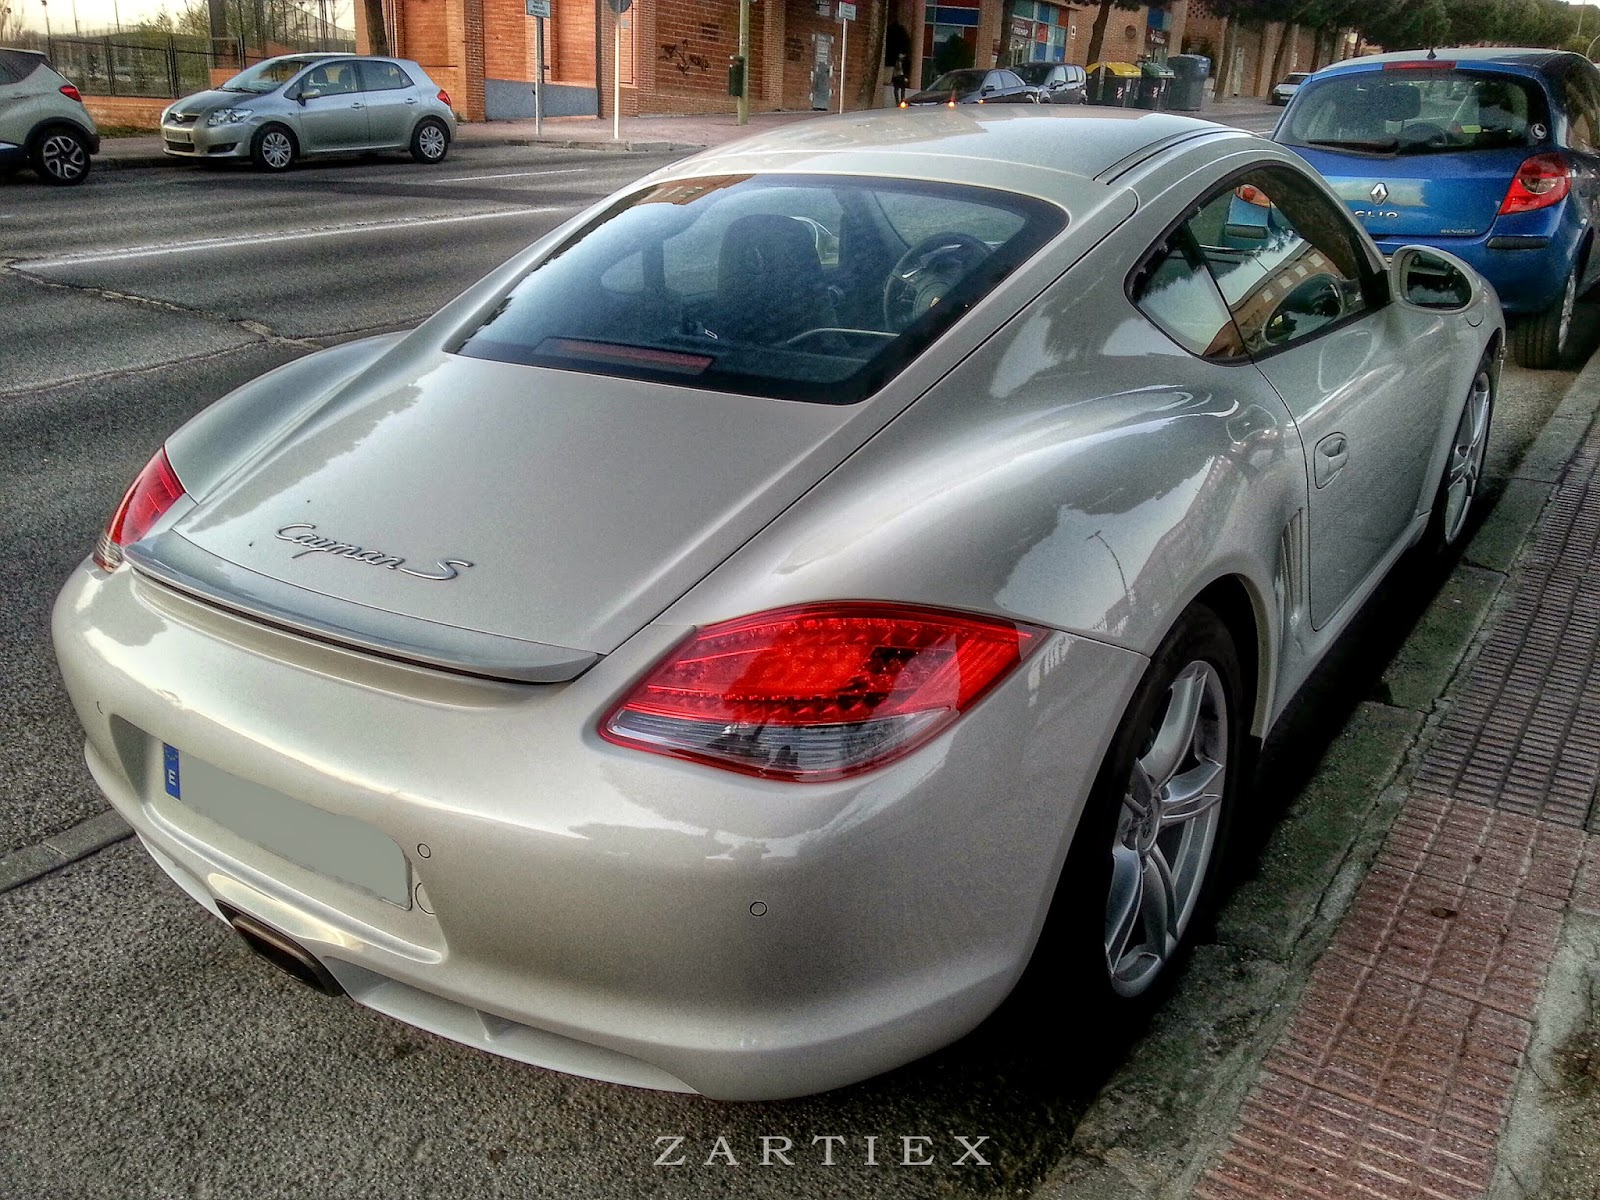 Porsche Carrera S - Auto insurance quotes online 3